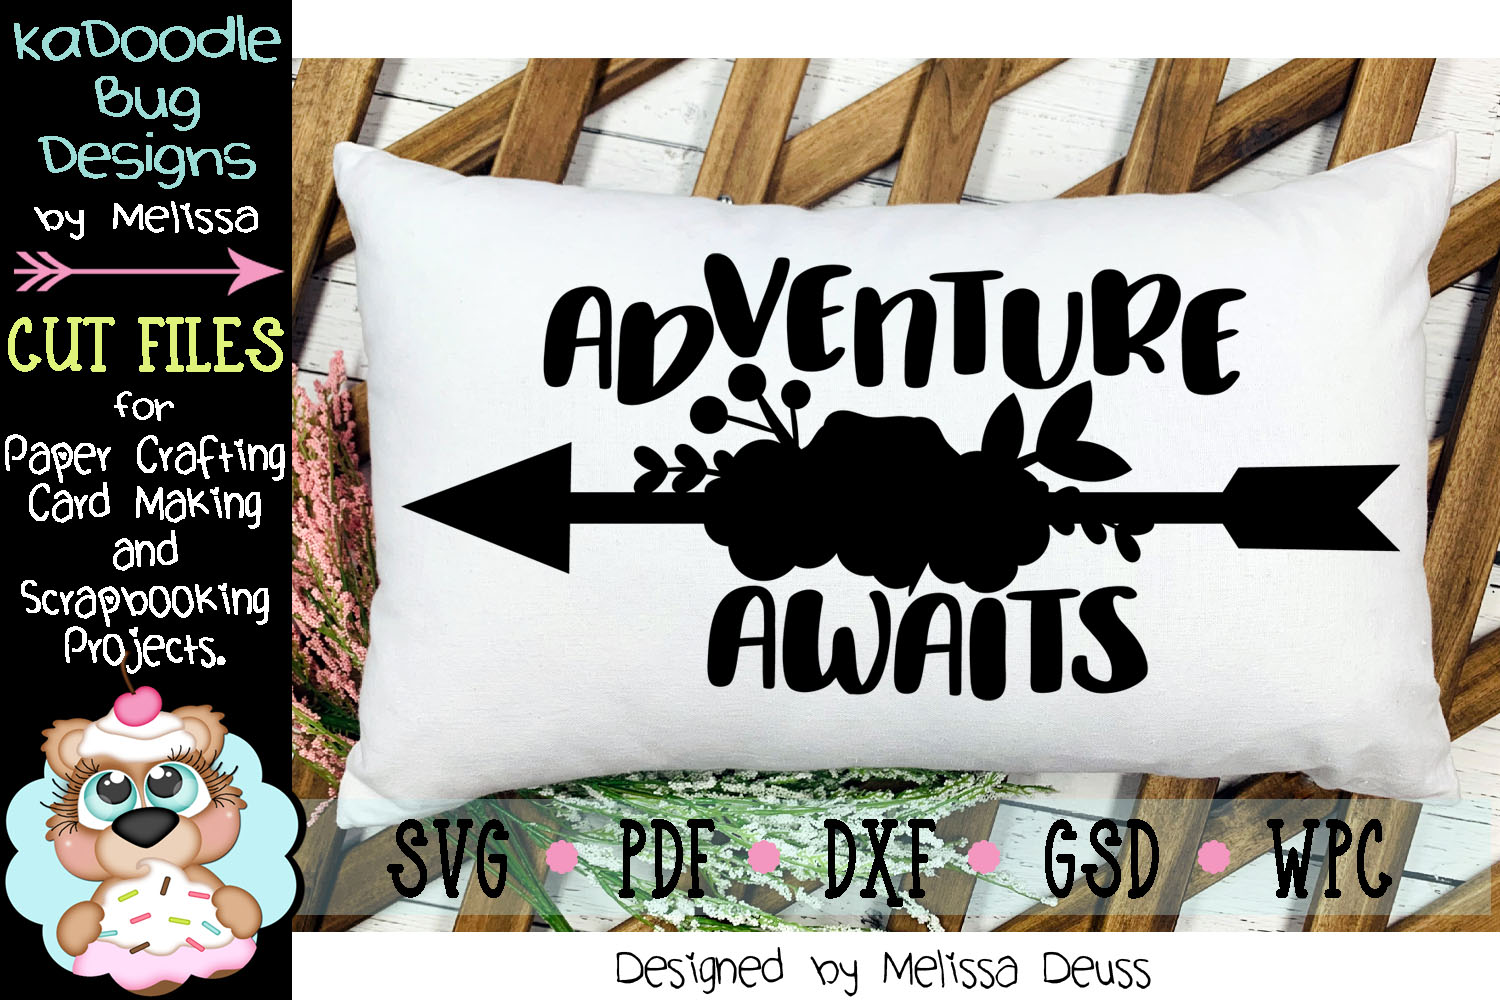 Adventure Awaits Cut File - SVG PDF DXF GSD WPC example image 1